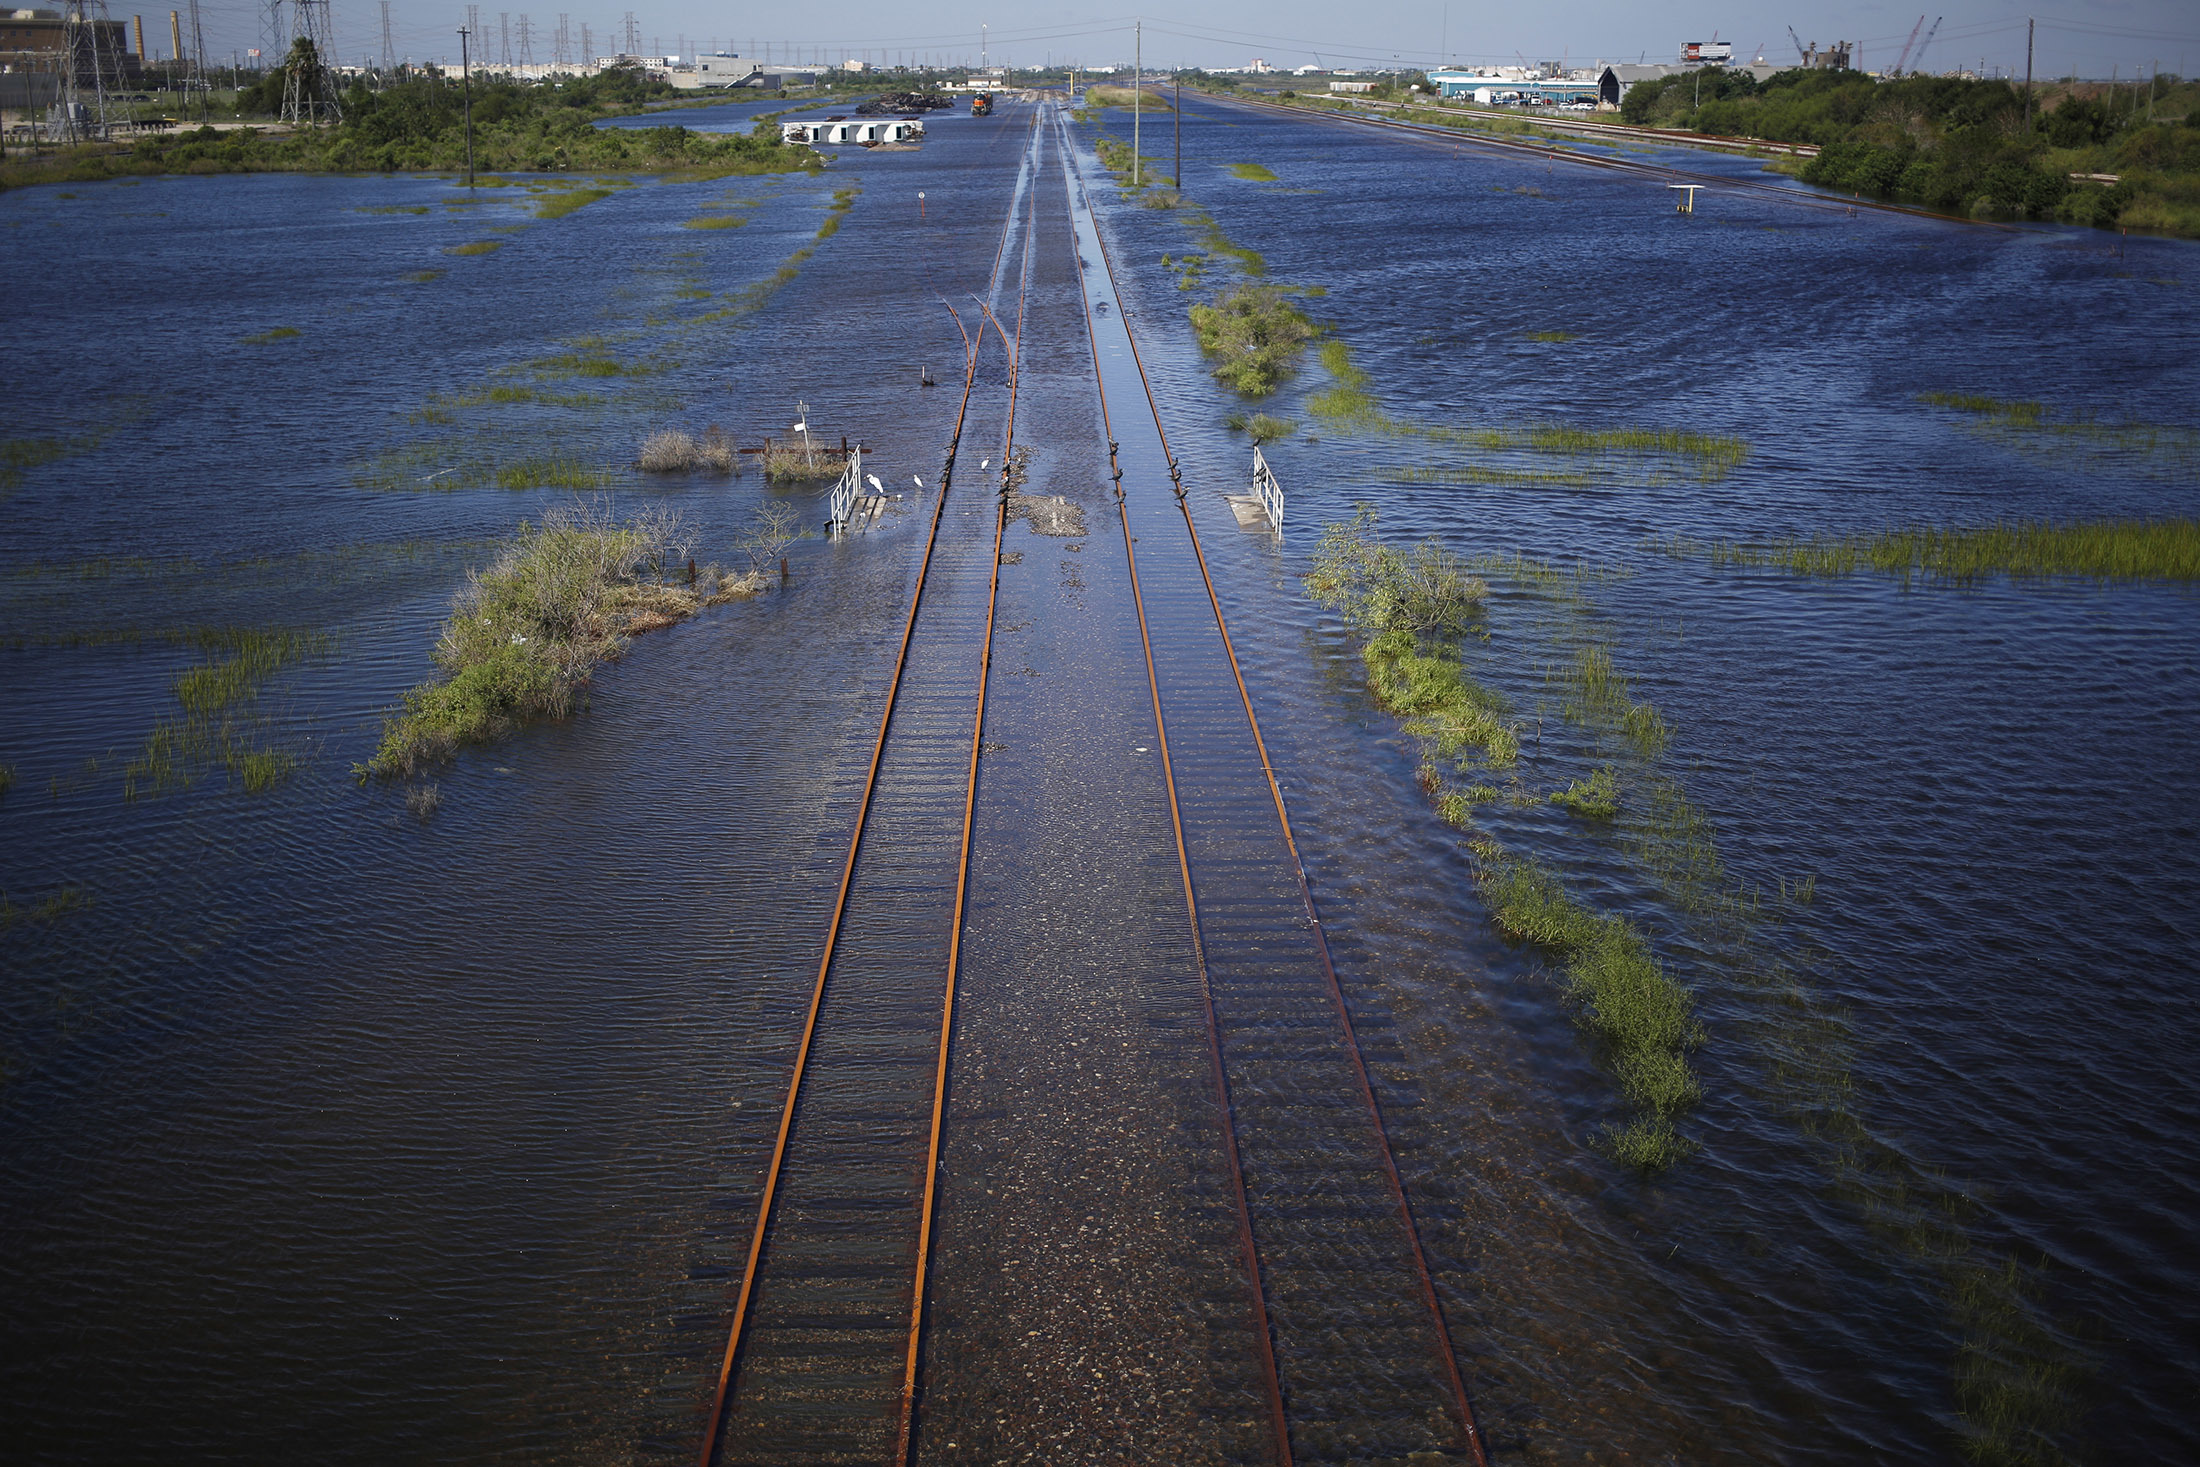 Railroad tracks are seen covered in floodwaters from Hurricane Harvey in Galveston, Texas, U.S., on Wednesday, Aug. 30, 2017. Unprecedented flooding from the Category 4 storm that slammed into the state's coast last week, sendinggasoline pricessurging as oil refineries shut, may also set a record for rainfall in the contiguous U.S., the weather service said Tuesday. Photographer: Luke Sharrett/Bloomberg